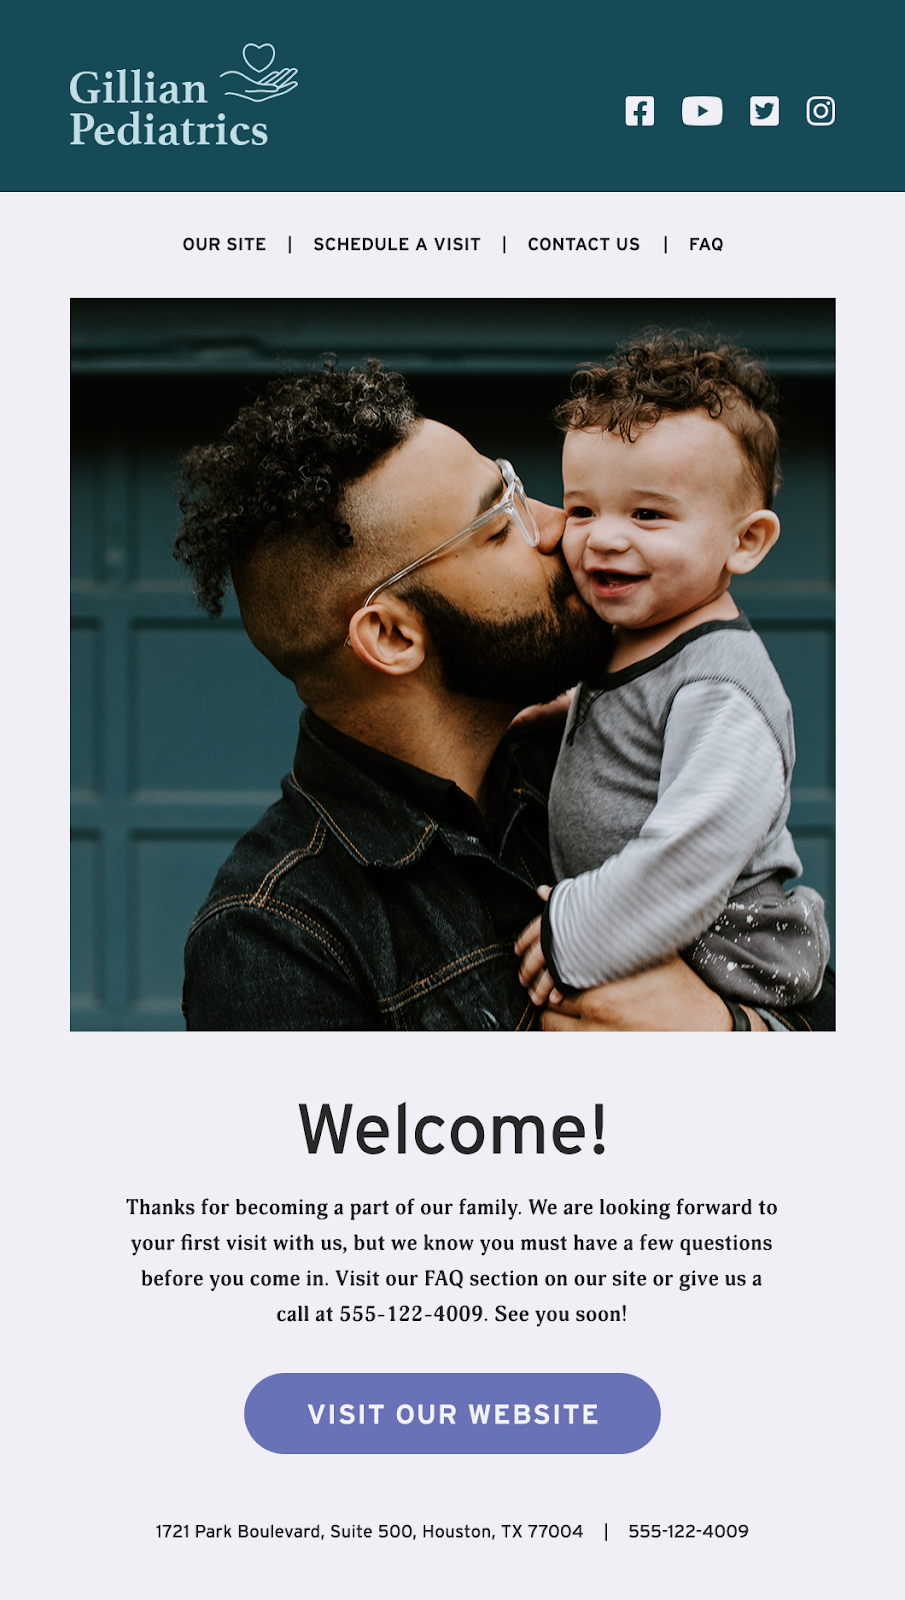 Automated welcome email #1, welcome and deliver